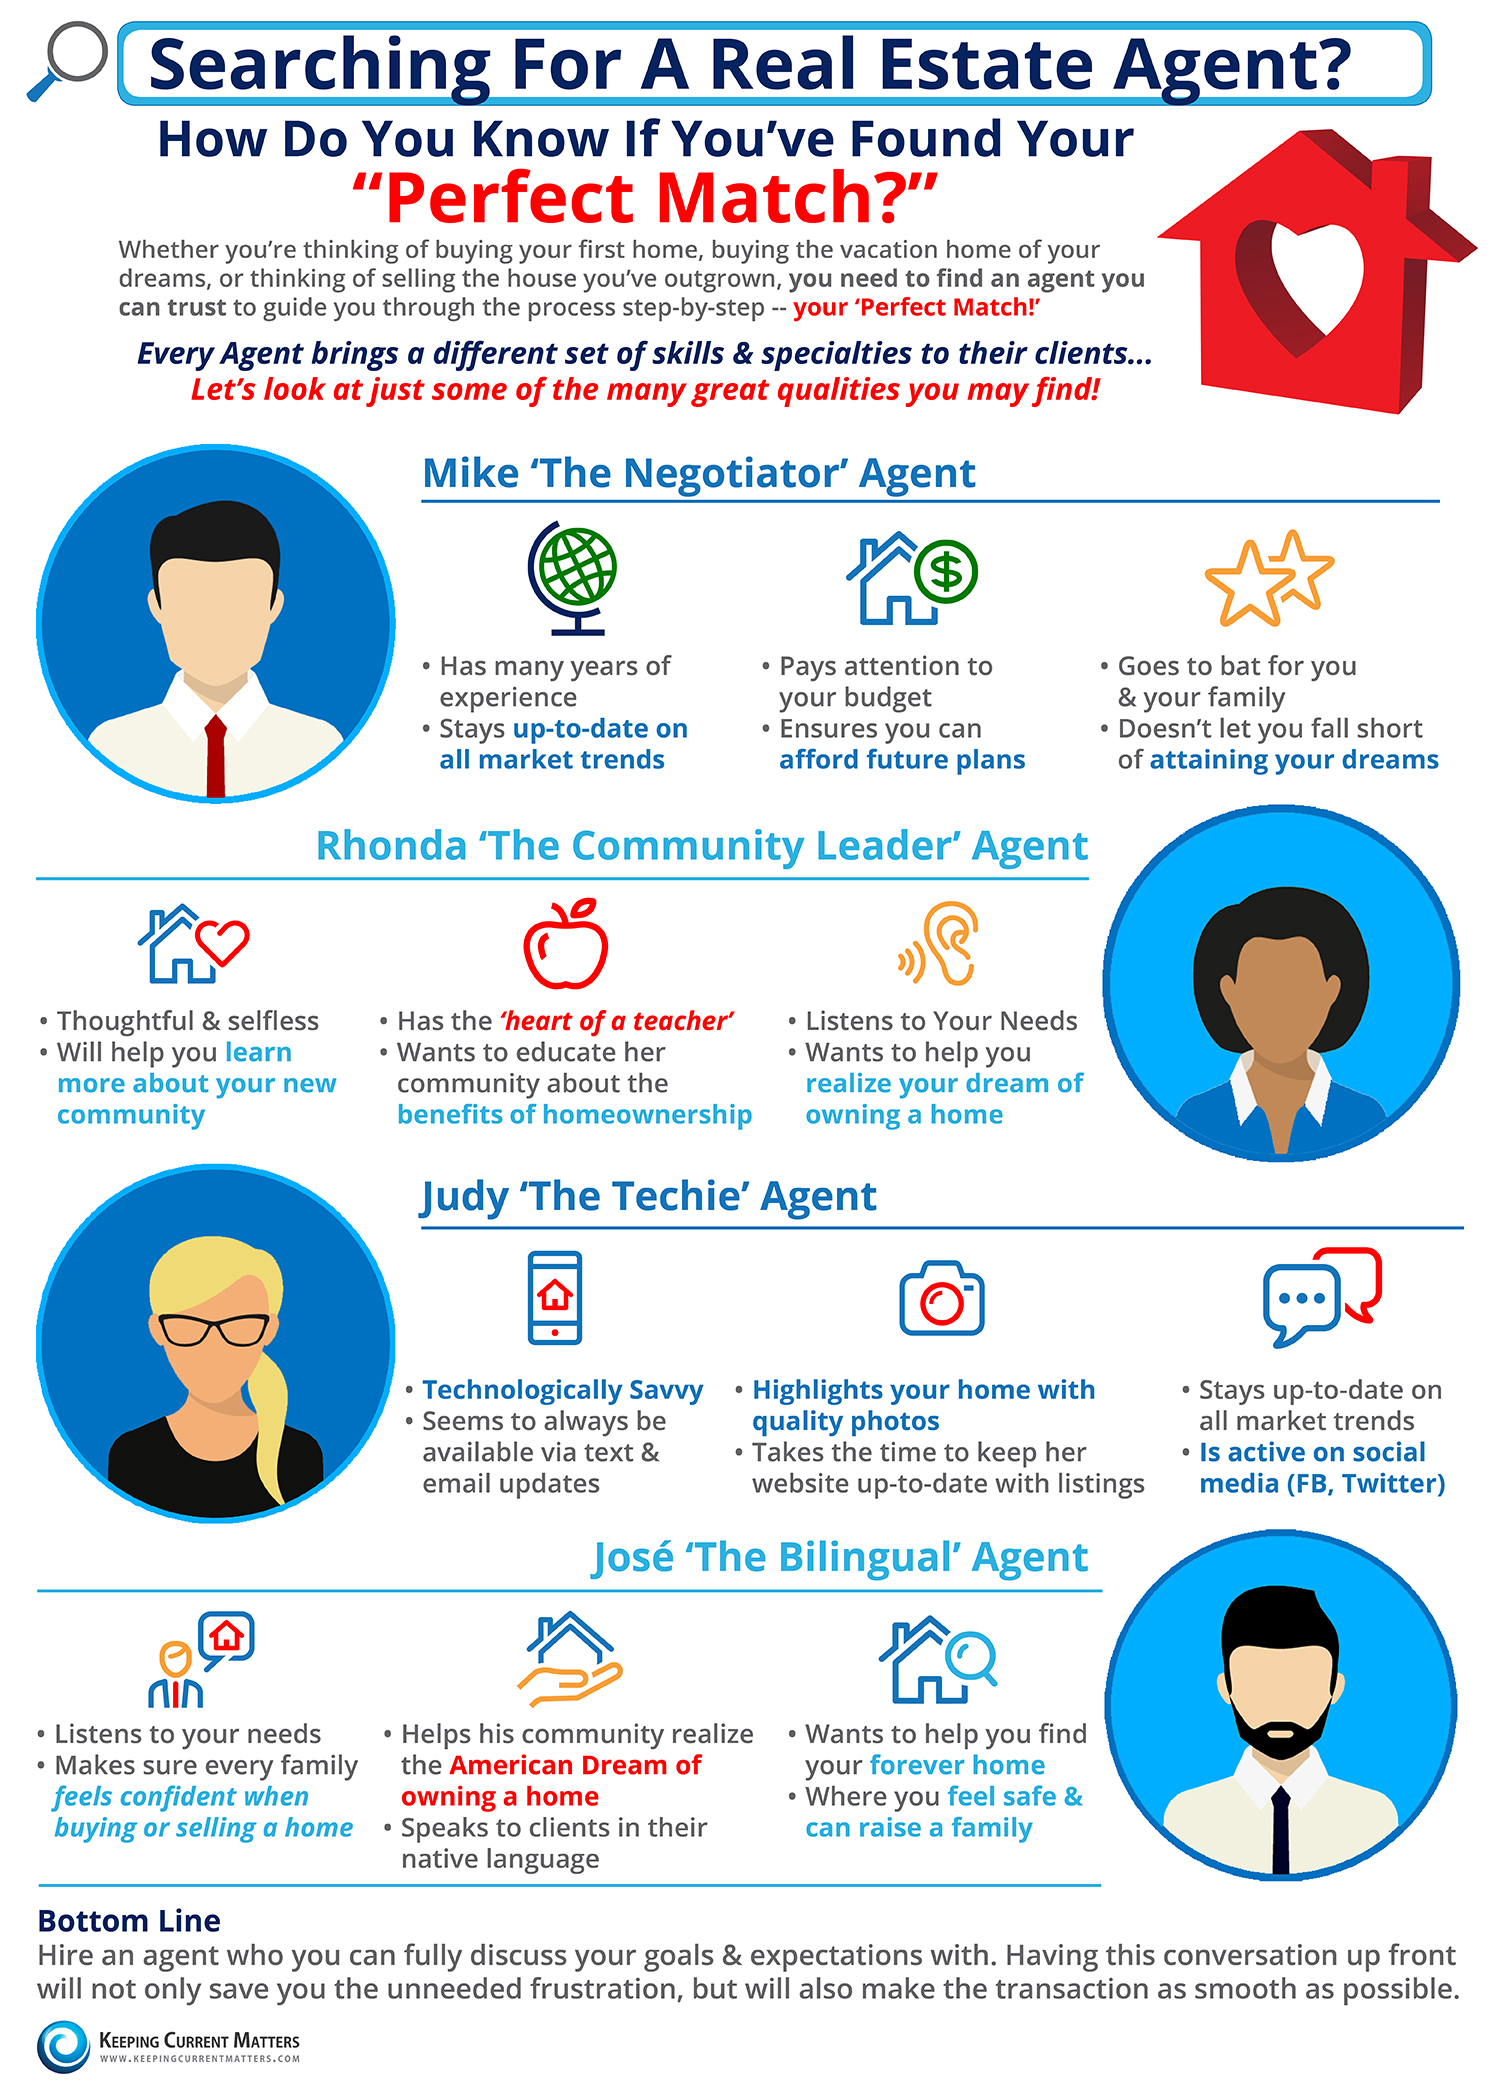 How Do You Know If You've Found Your 'Perfect Match'? [INFOGRAPHIC]   Keeping Current Matters